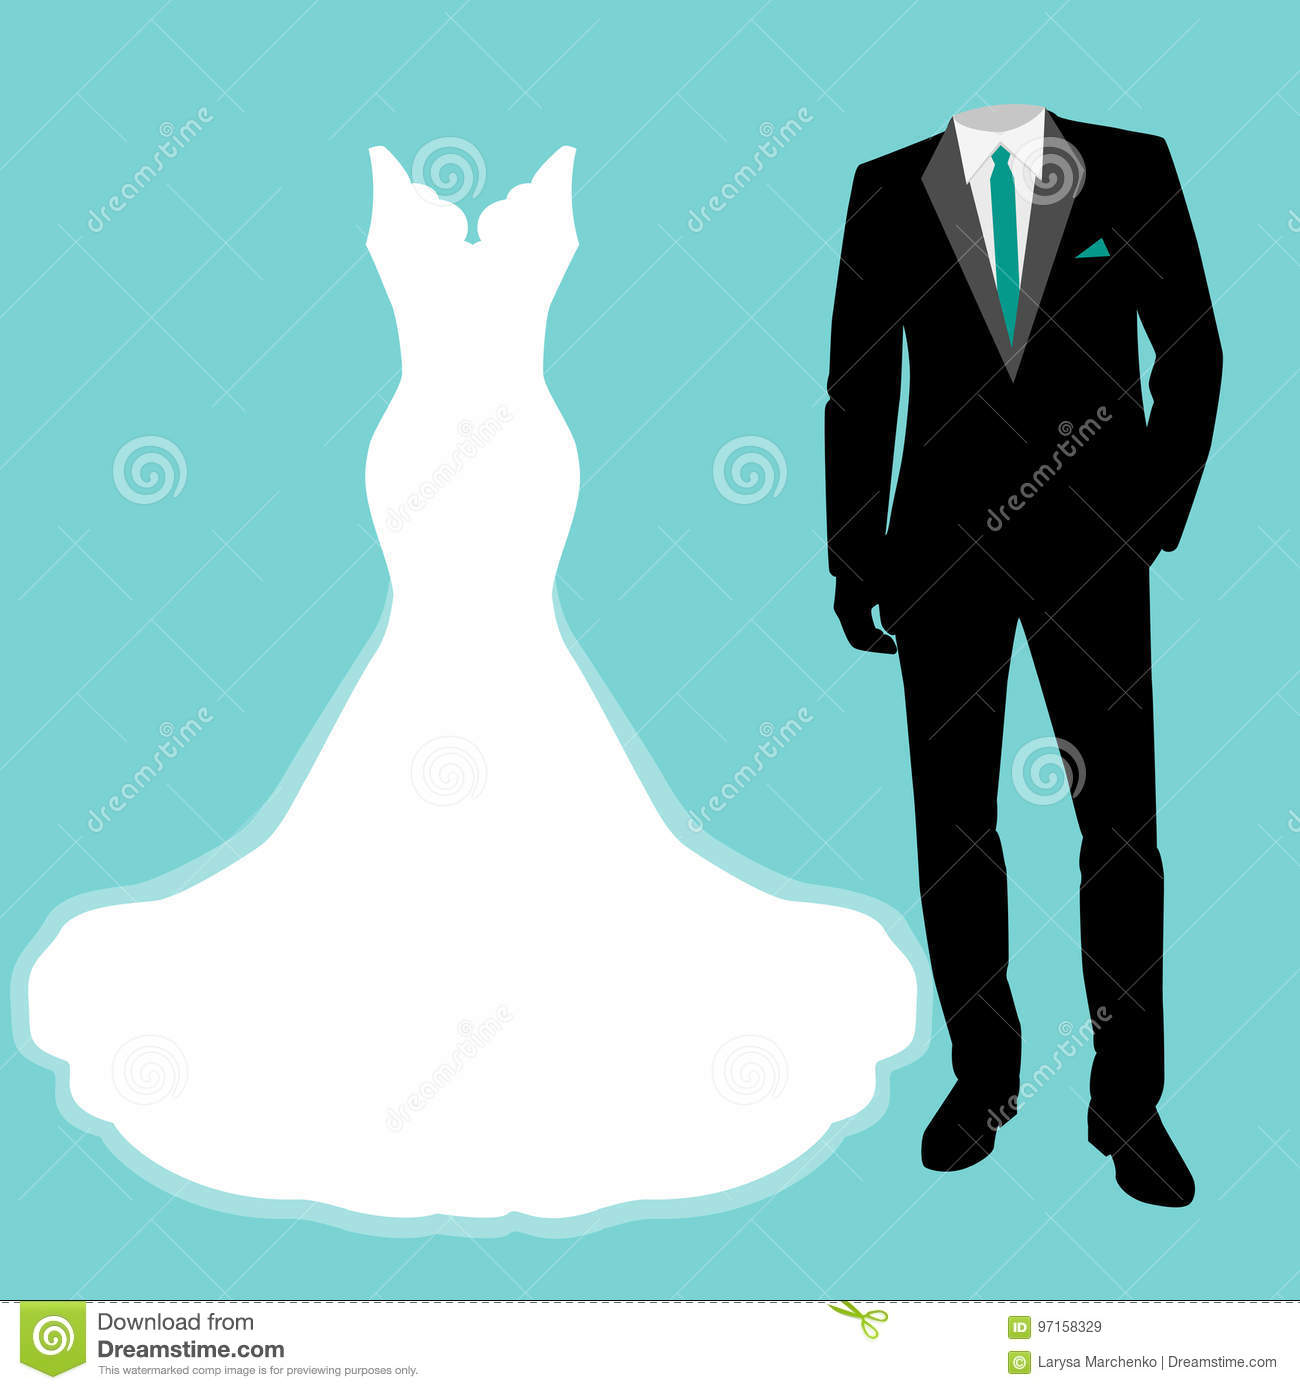 Wedding dress and tuxedo. stock vector. Illustration of engagement ...